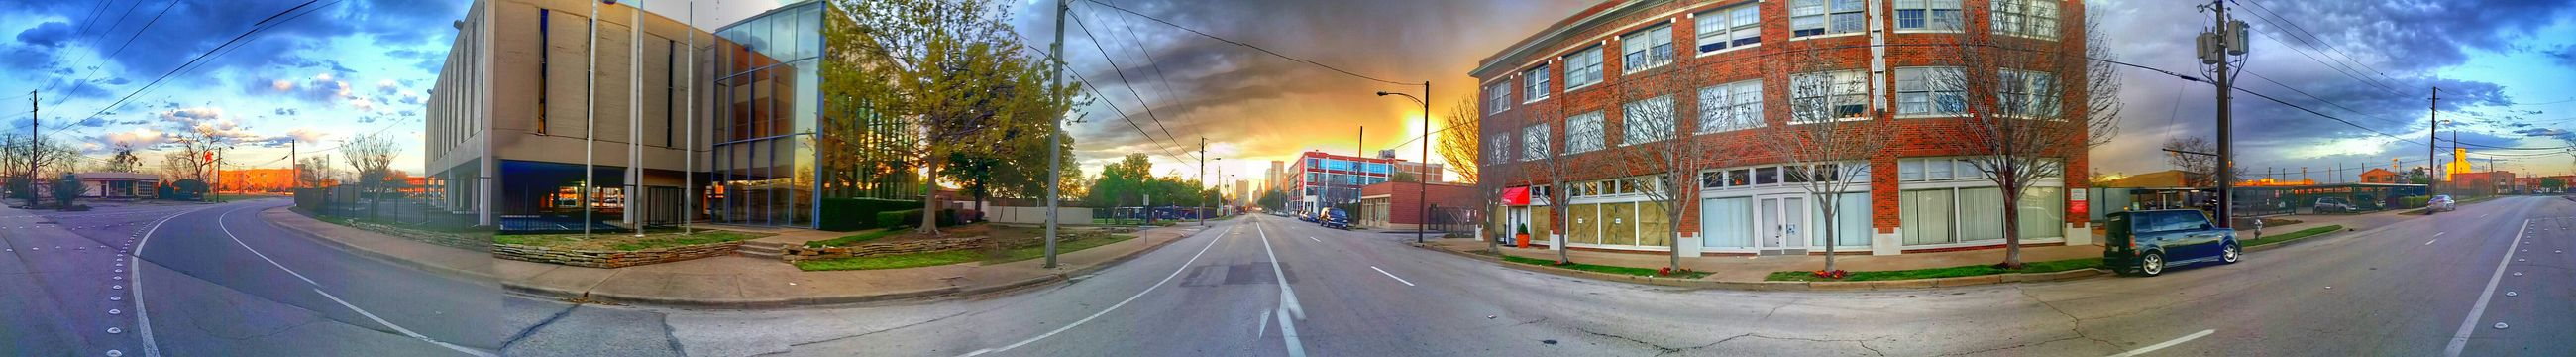 360shot Samsung Galaxy Note 3 Photography Dallas Tx Deepellum Snapseed Sunset